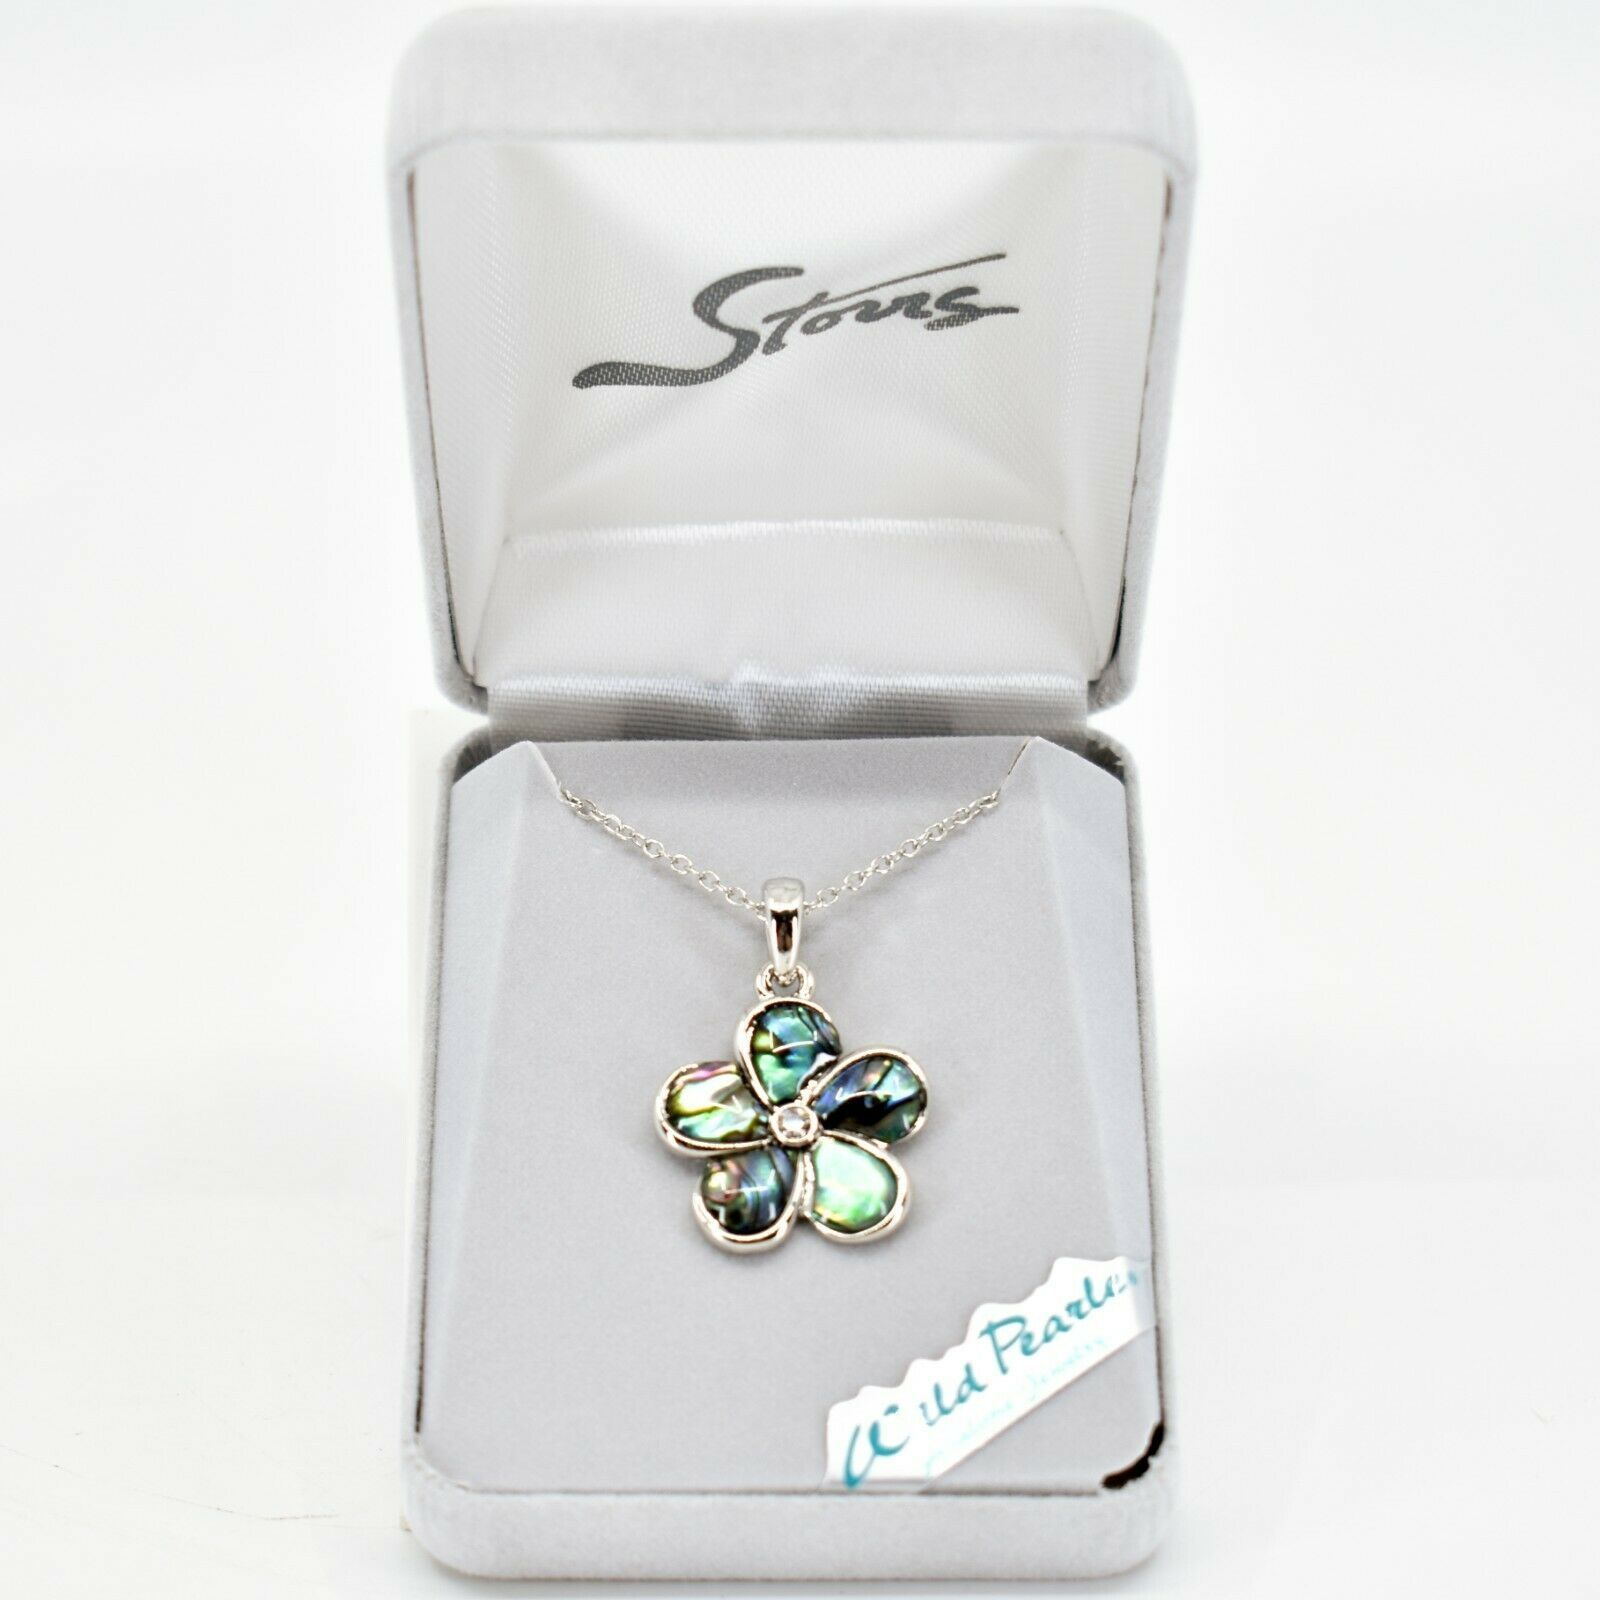 A.T. Storrs Wild Pearle Abalone Shell Forget Me Not Flower Pendant & SNecklace